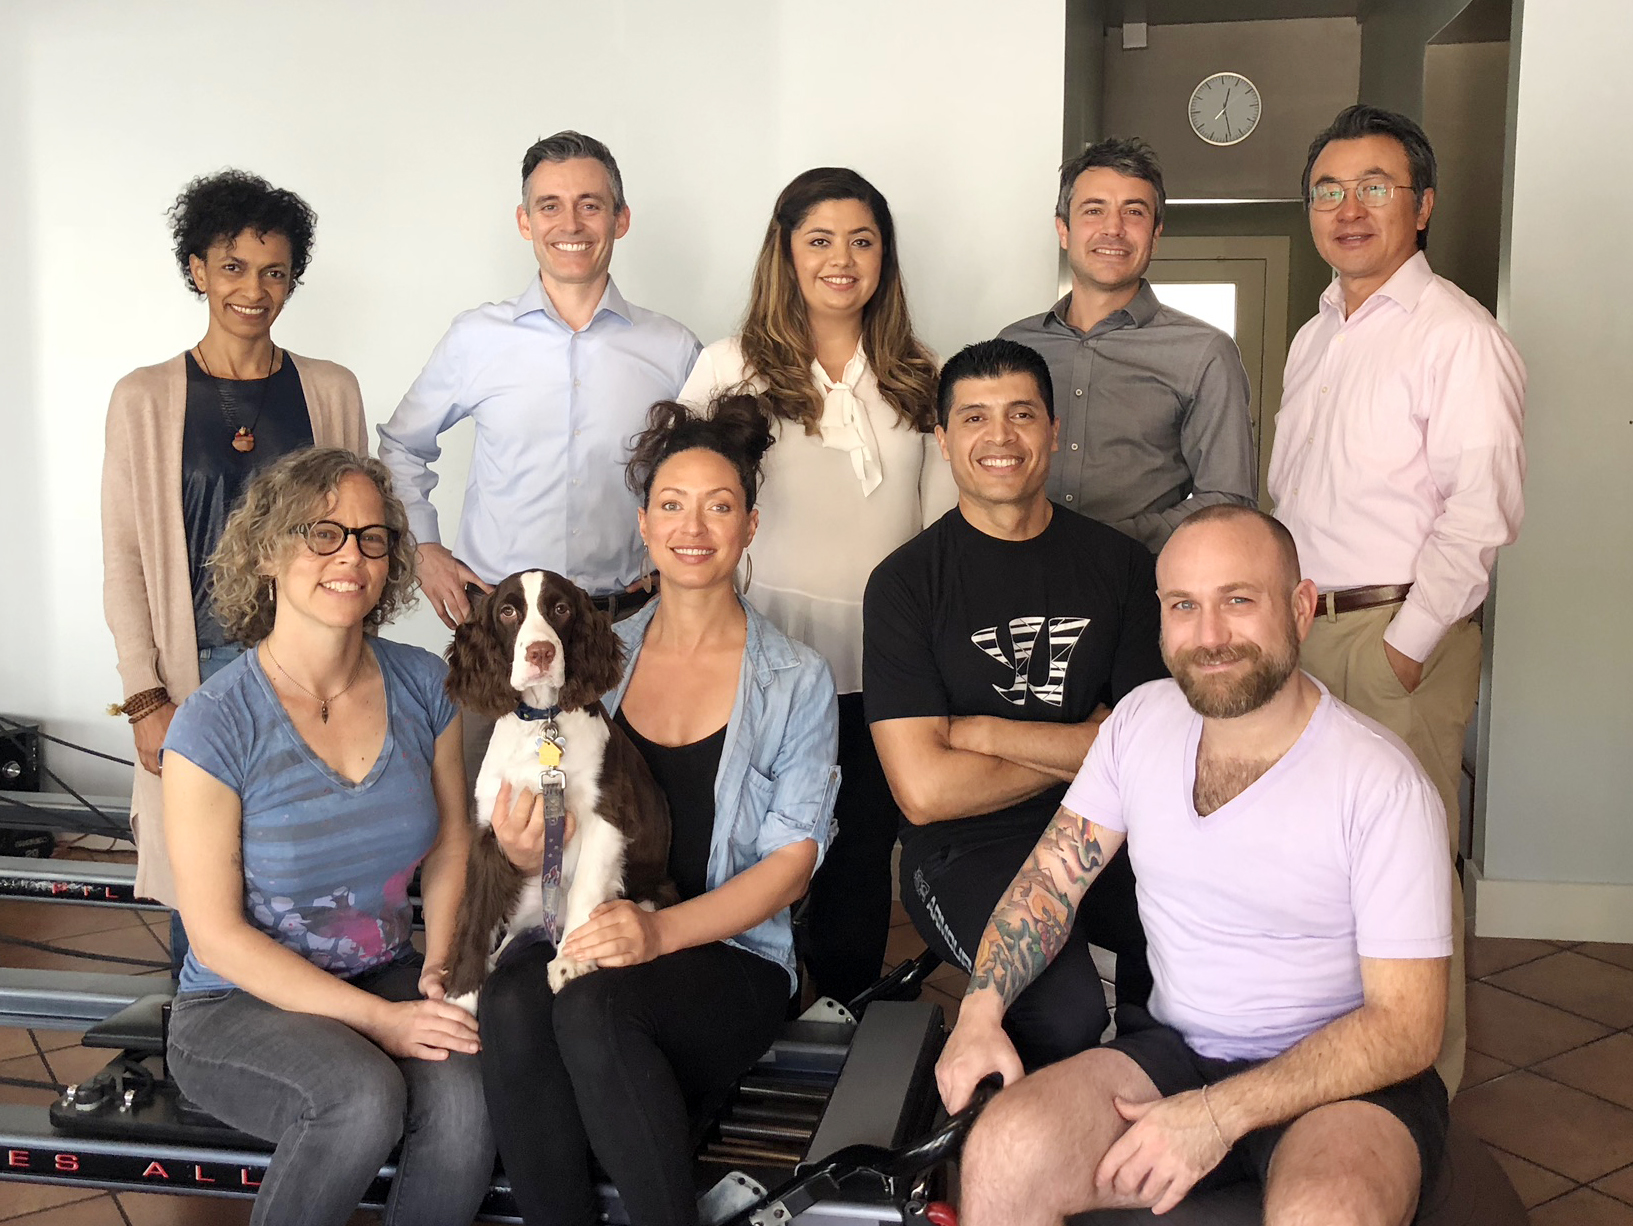 Image of all the staff at Live Well chiropractic with Dr. Gloin's friendly Dog Shelby